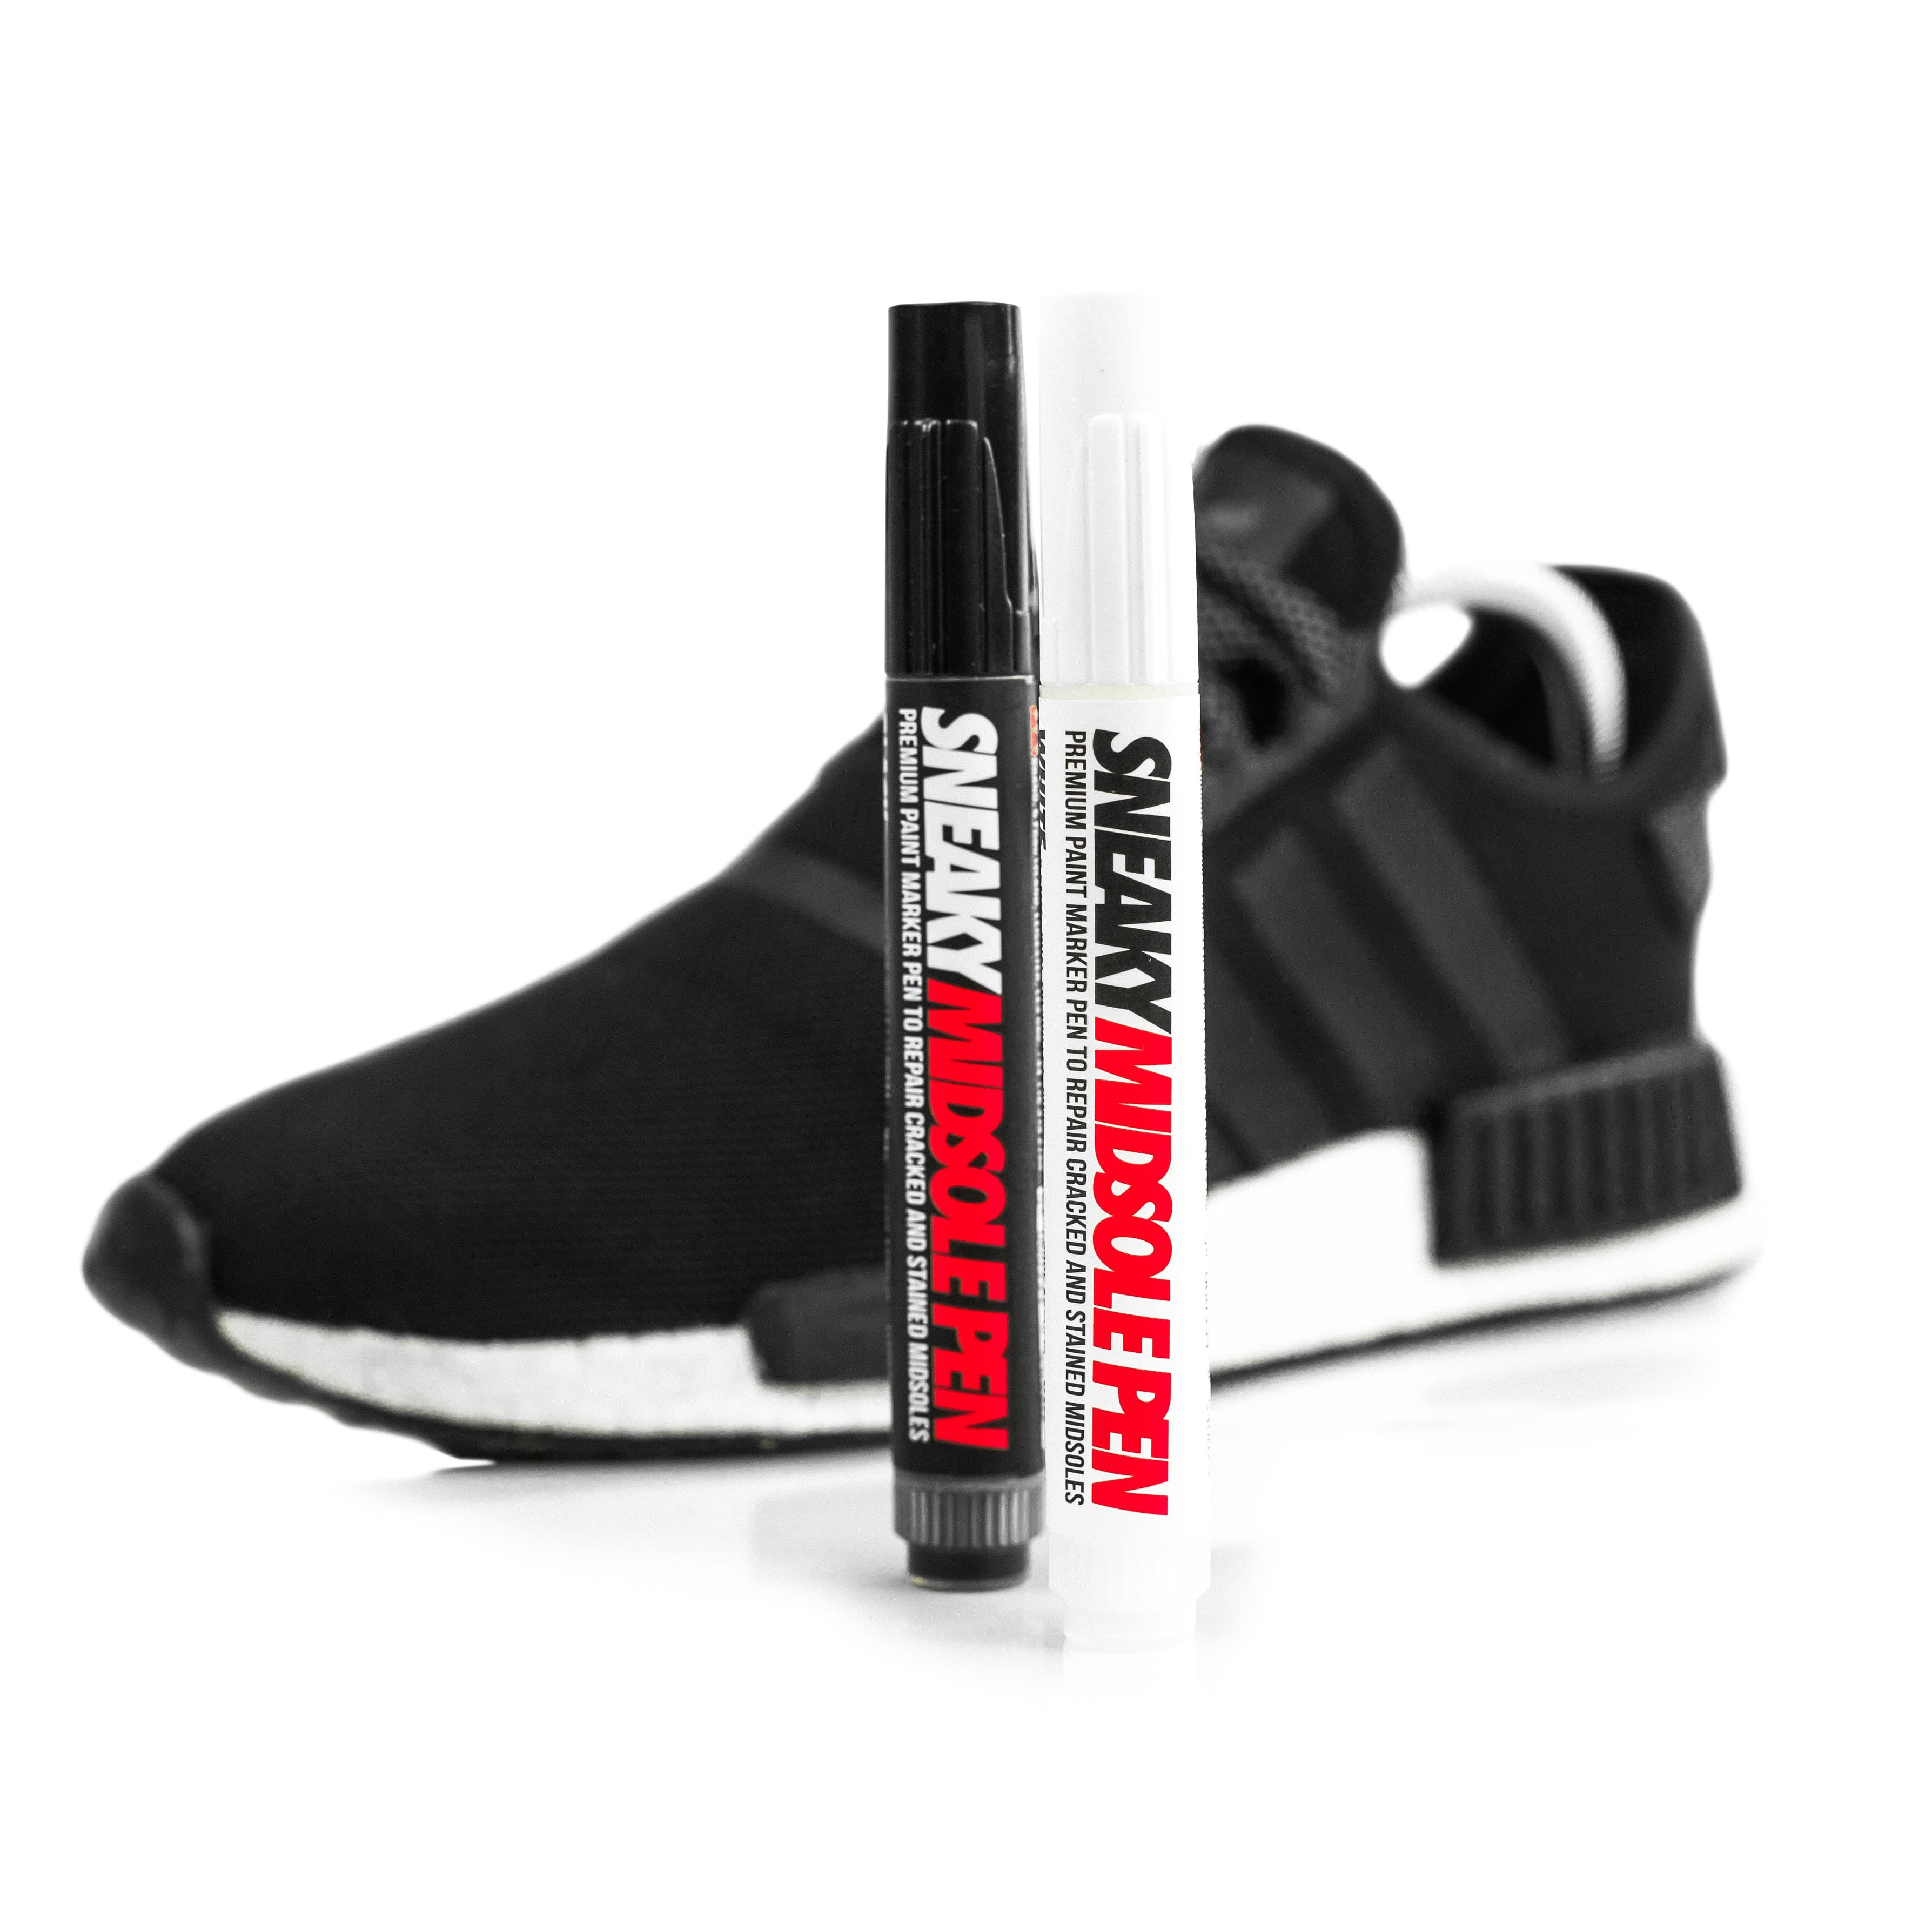 Sneaky Midsole Pen - Trainer Touch Up Marker Pen - Kick Game